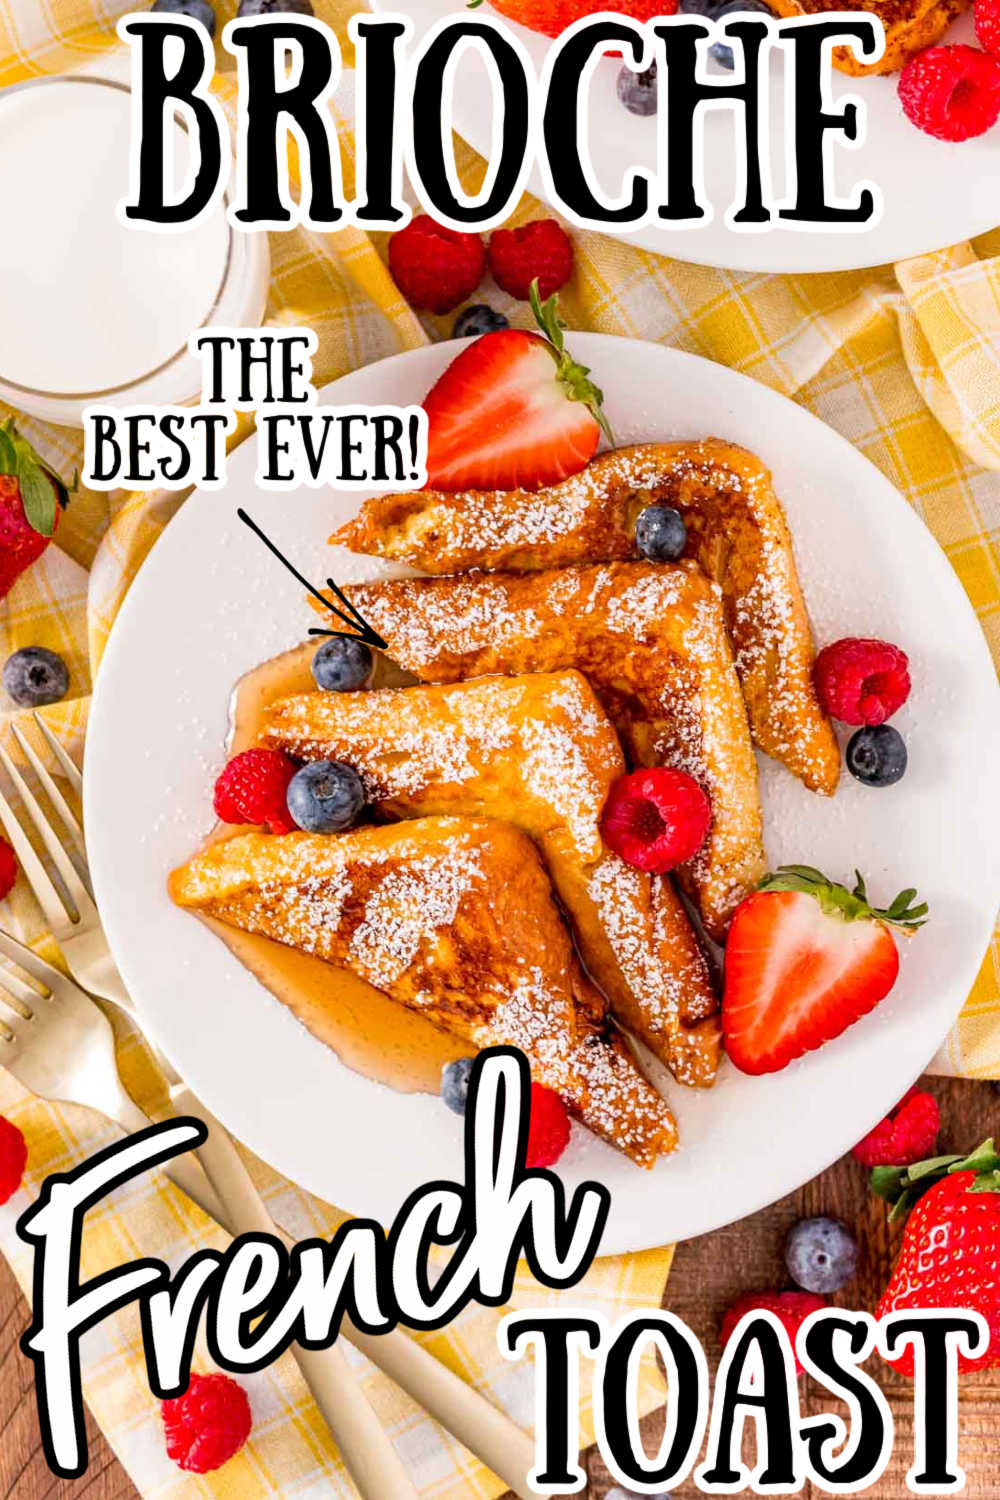 The Best Brioche French Toast is soaked in a rich and creamy egg wash, then cooked to a mouth-watering golden brown! A sweet breakfast option the whole family will be excited to see in the morning! via @sugarandsoulco